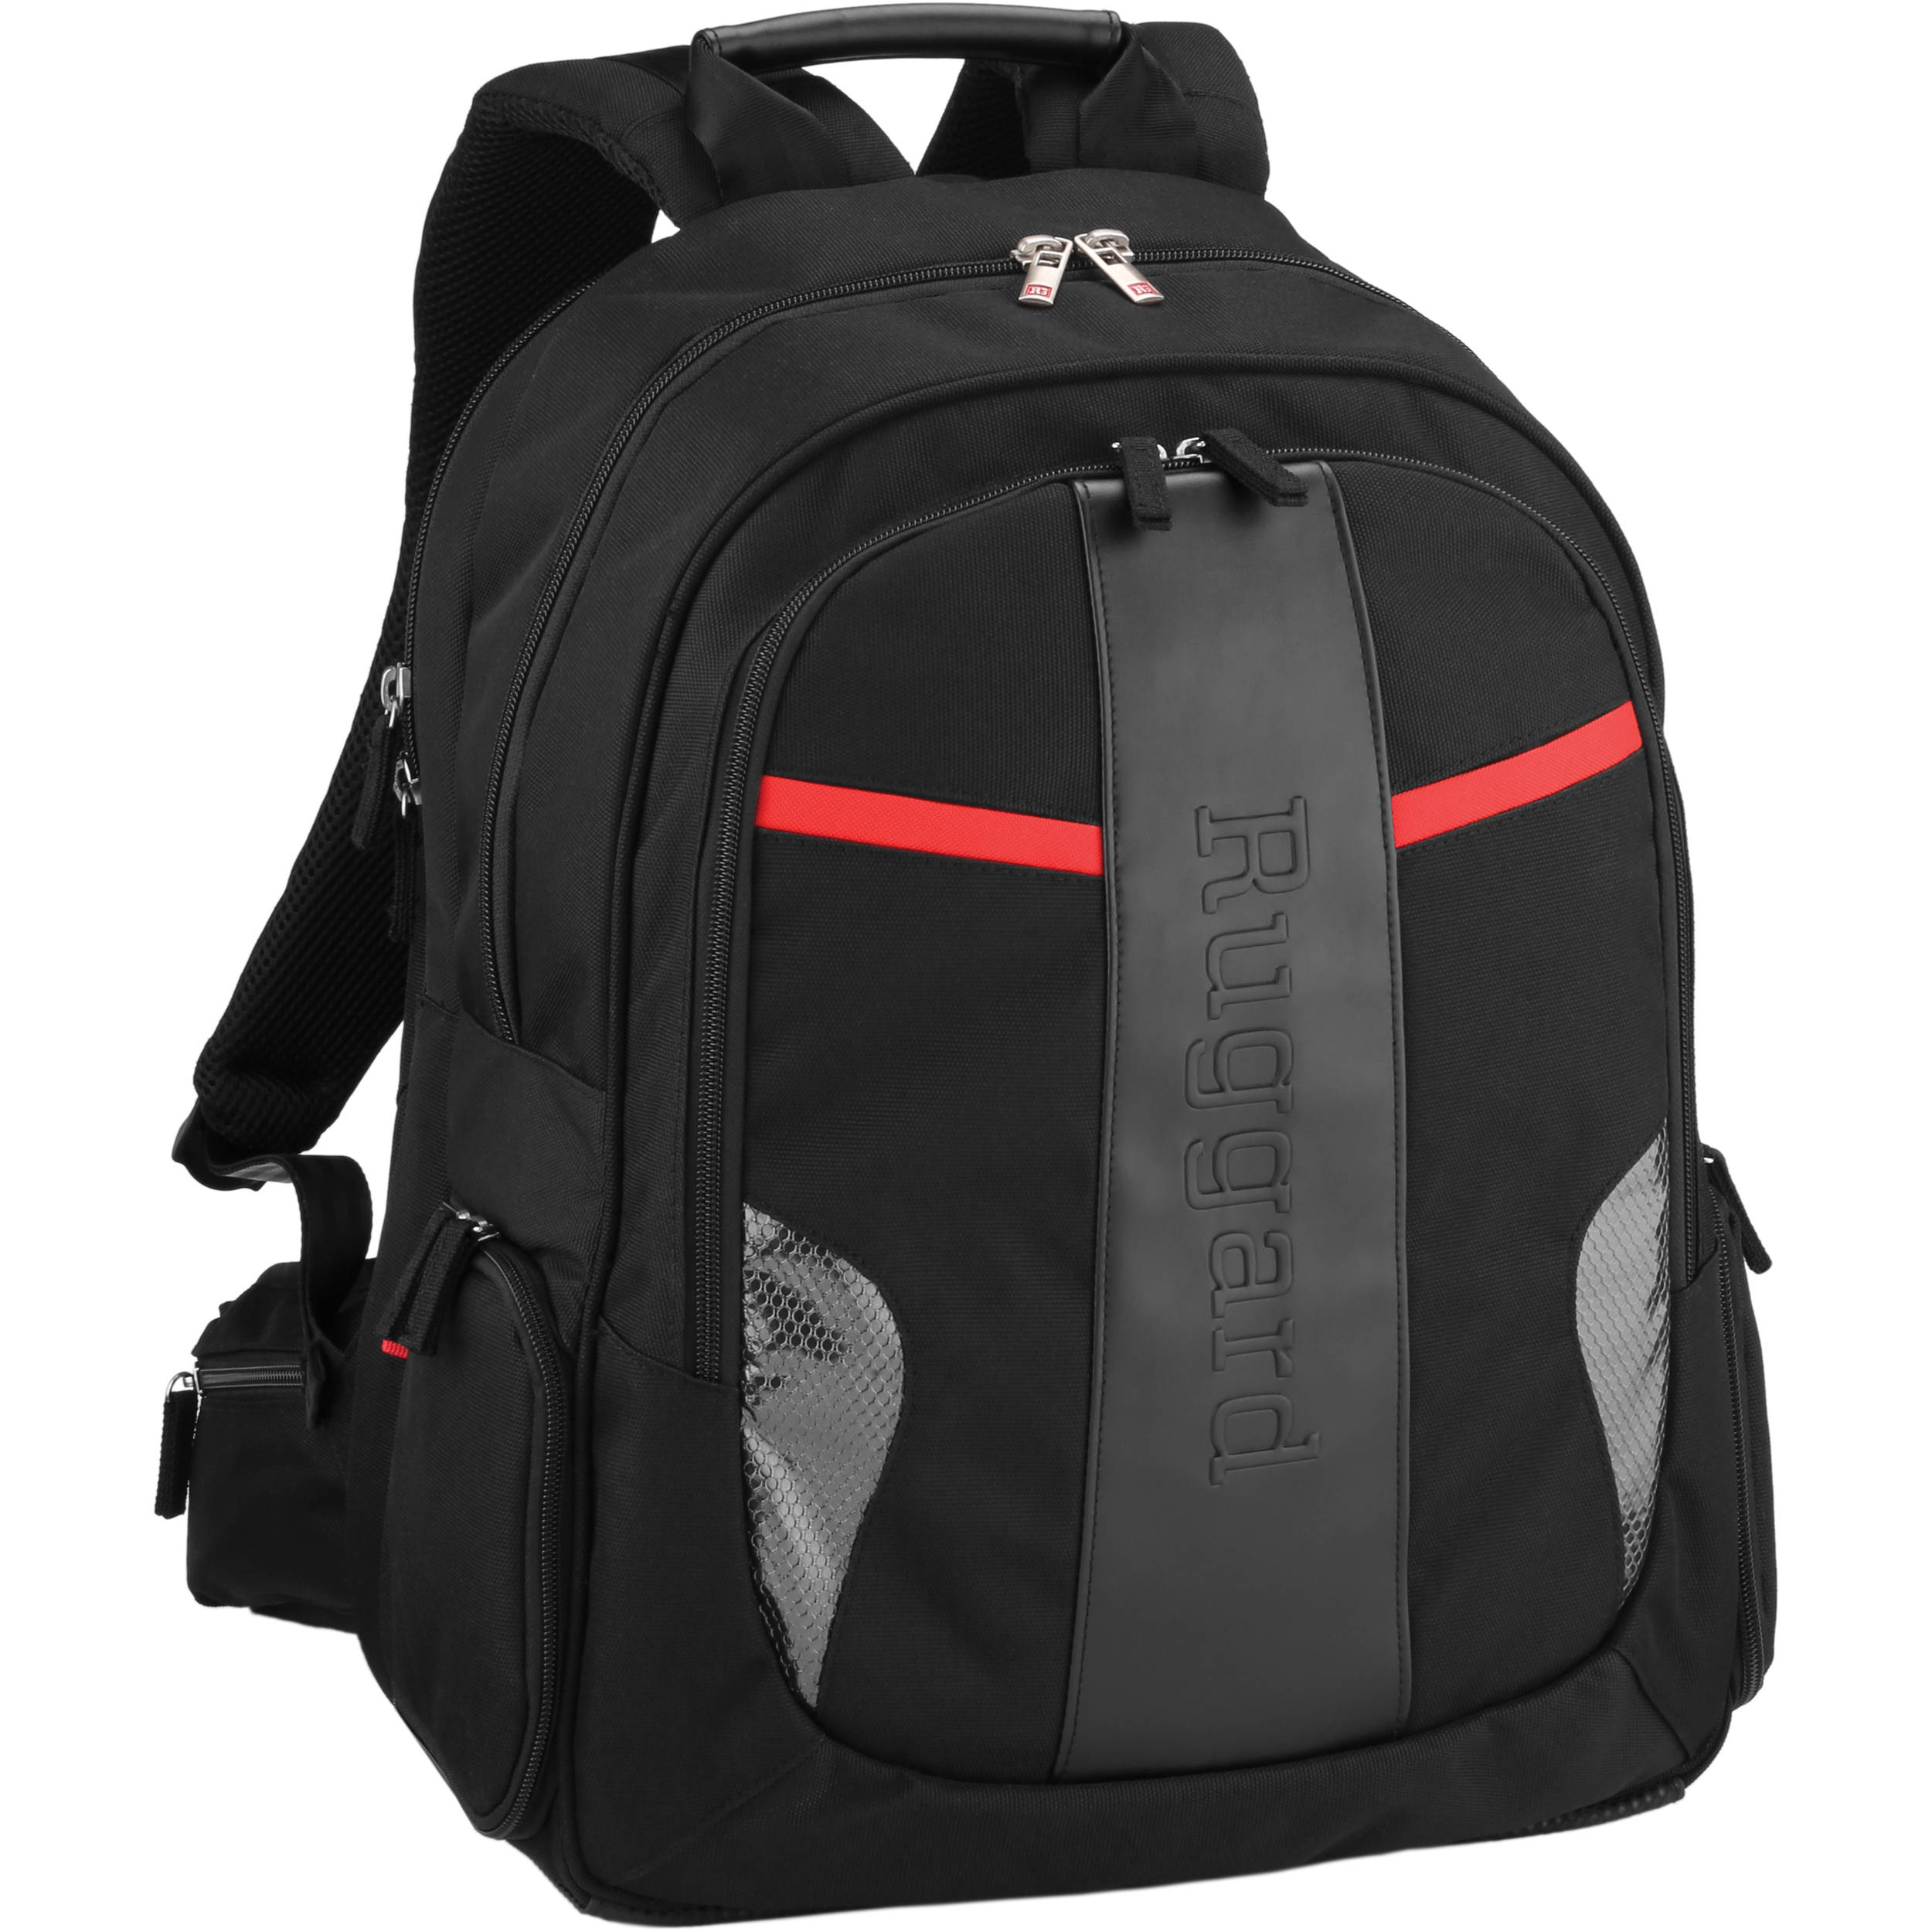 a40930de19 Ruggard Red Series Ruby 33 Tech Backpack